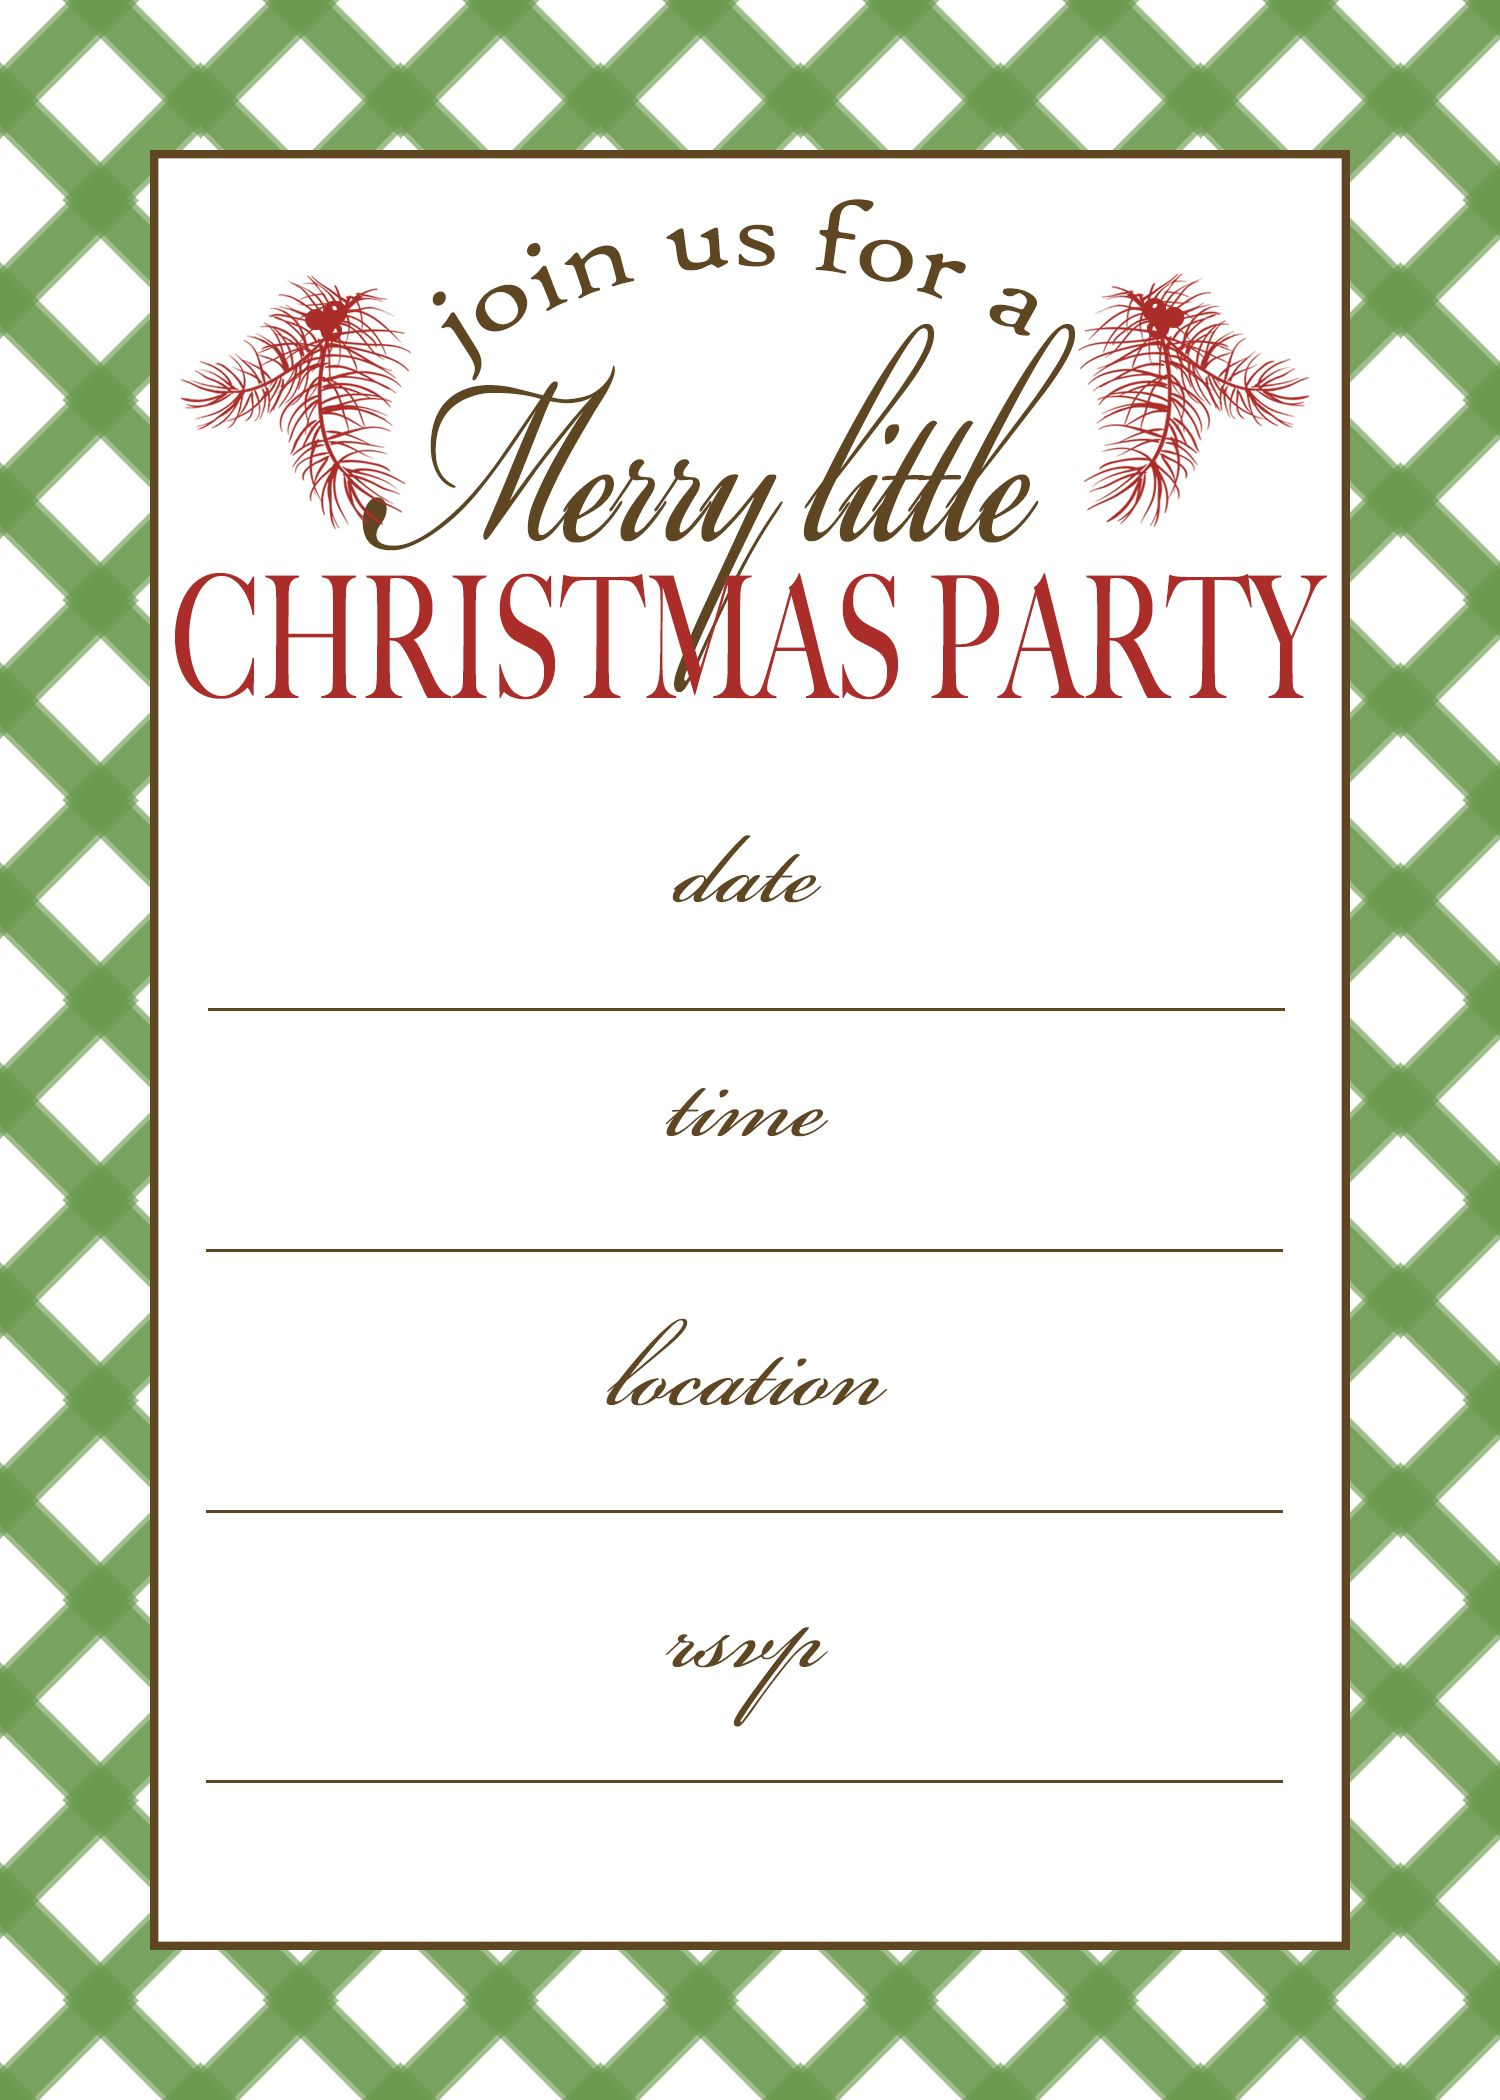 Christmas Pajama Party Invitation Template